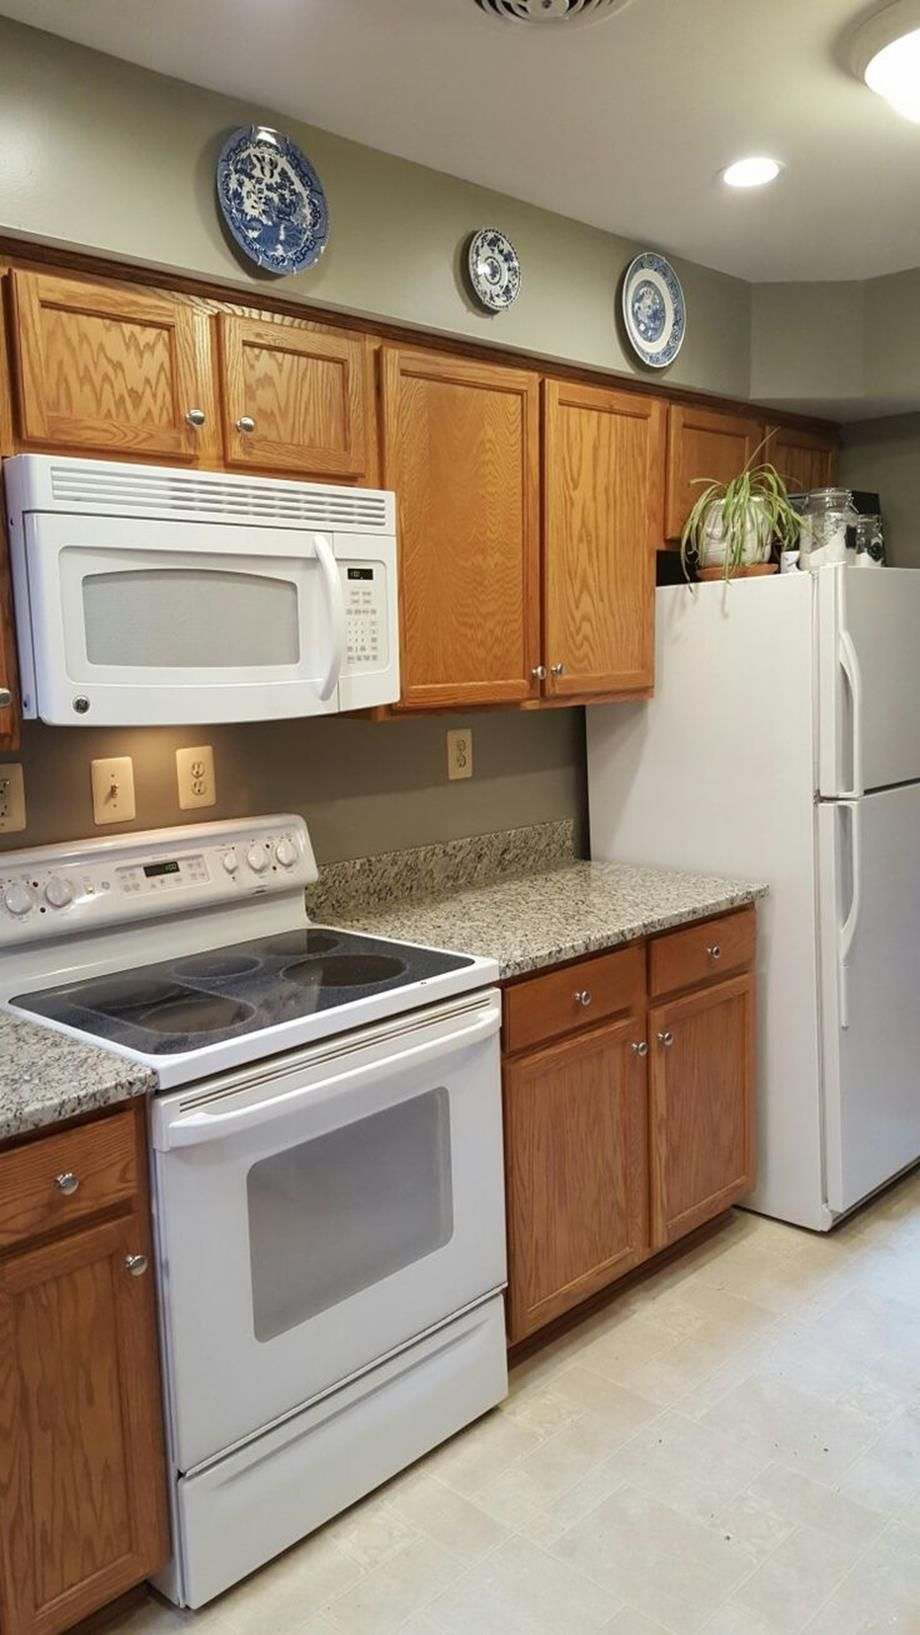 kitchen wall colors with oak cabinets 12 kitchen wall colors cream colored kitchen cabinets on kitchen cabinet color ideas id=42579